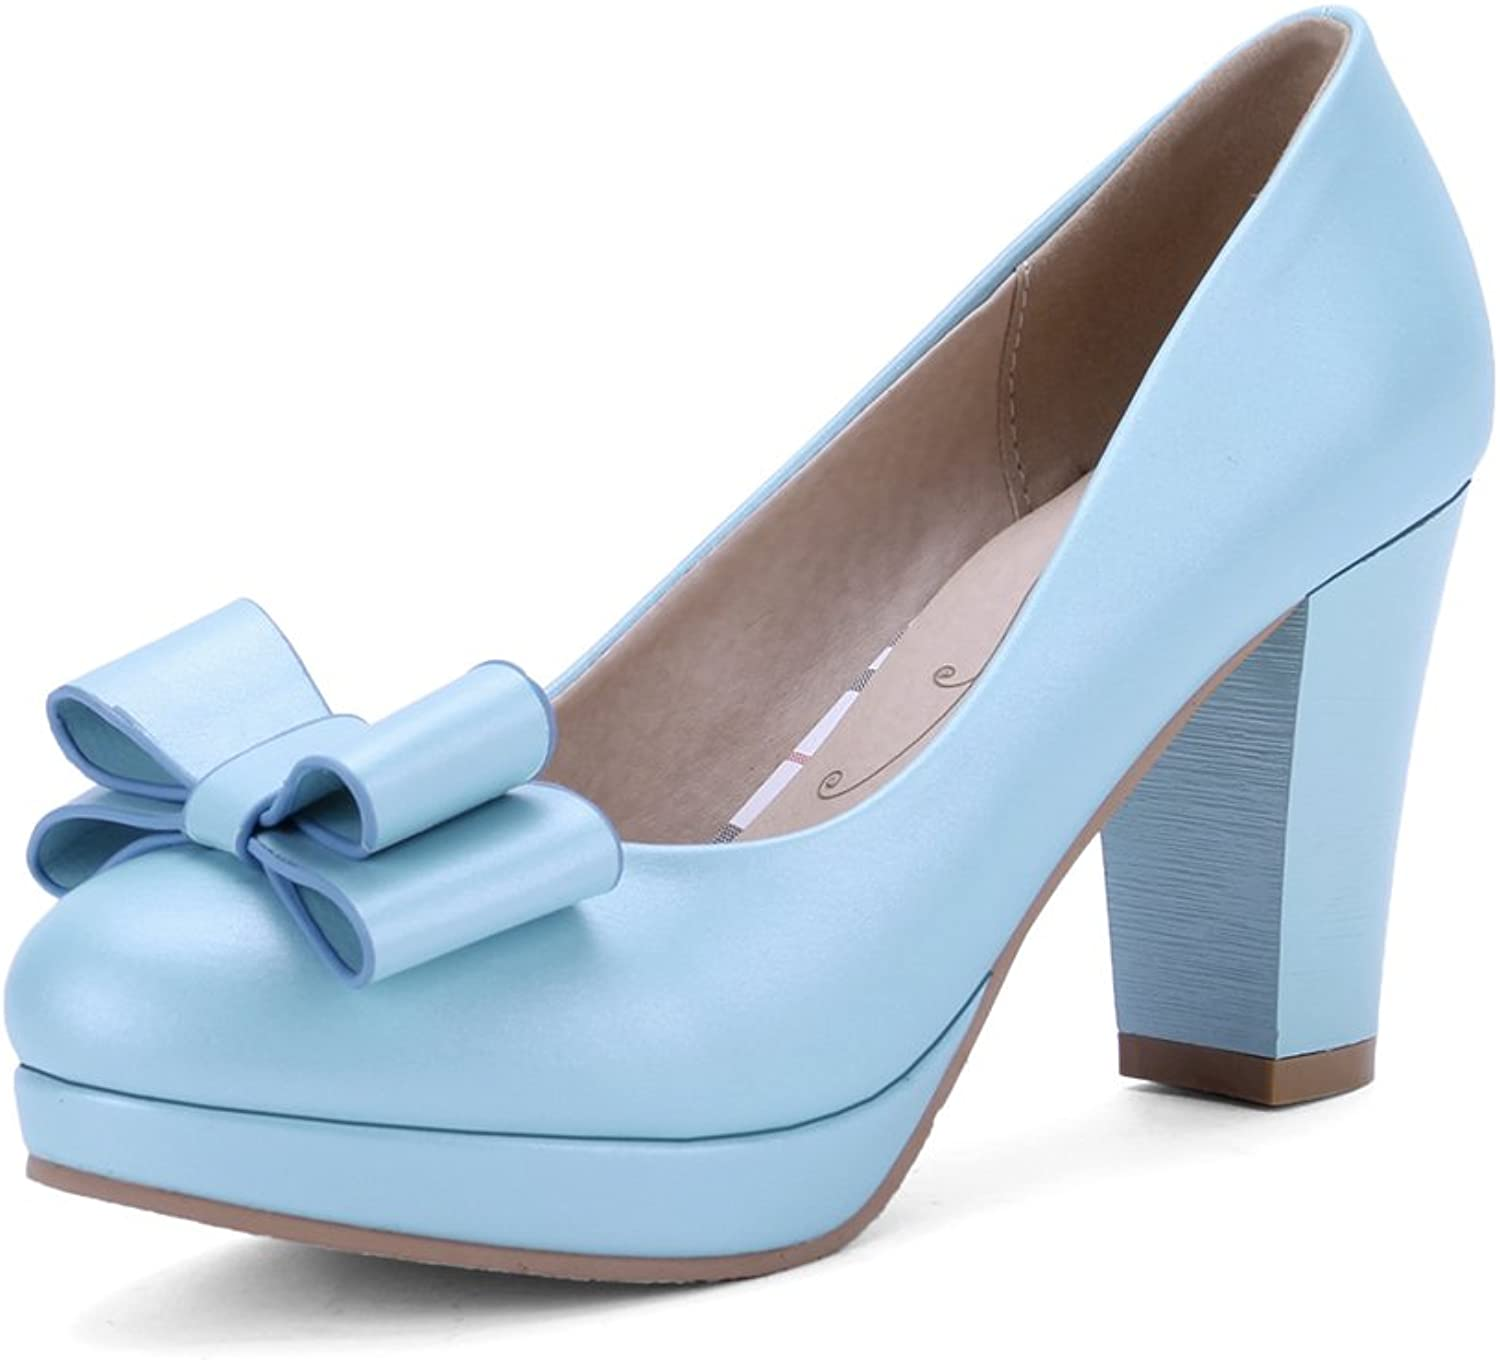 Lucksender Womens Round Toe High Chunky Sweet Style Pumps shoes with Bowknot